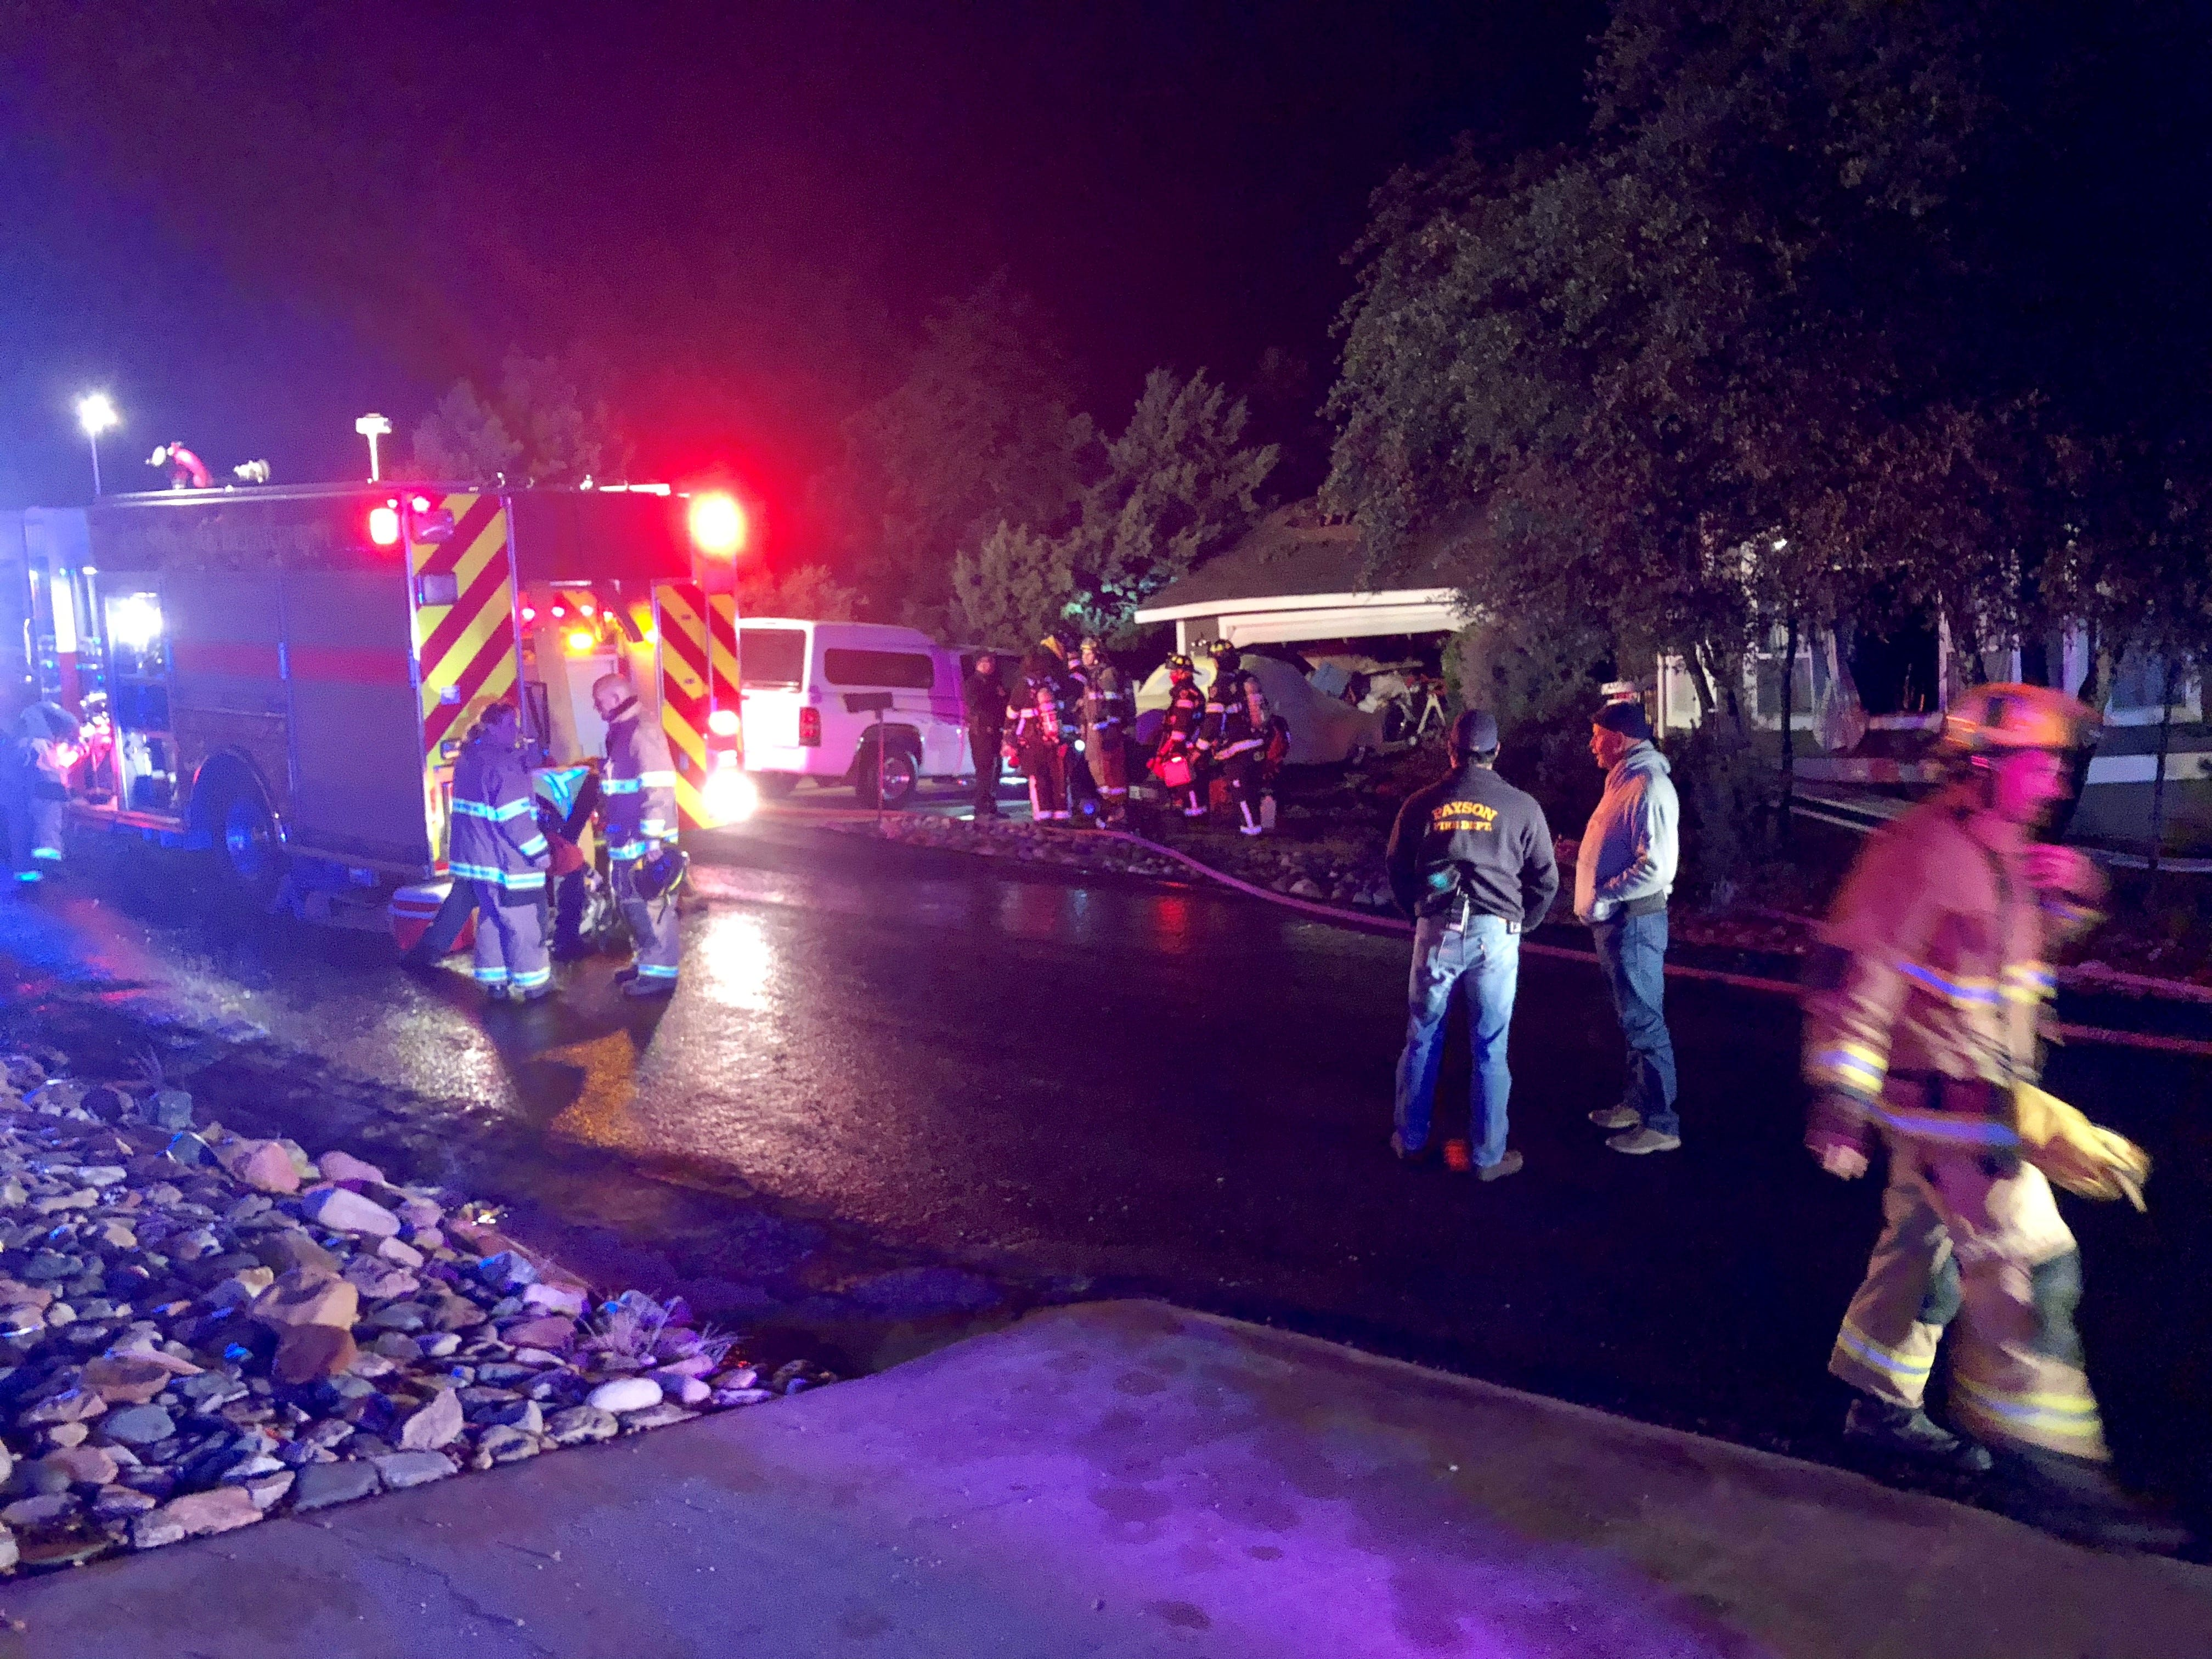 2 on small plane killed as it crashes into Payson house; man inside home unhurt | Arizona Central